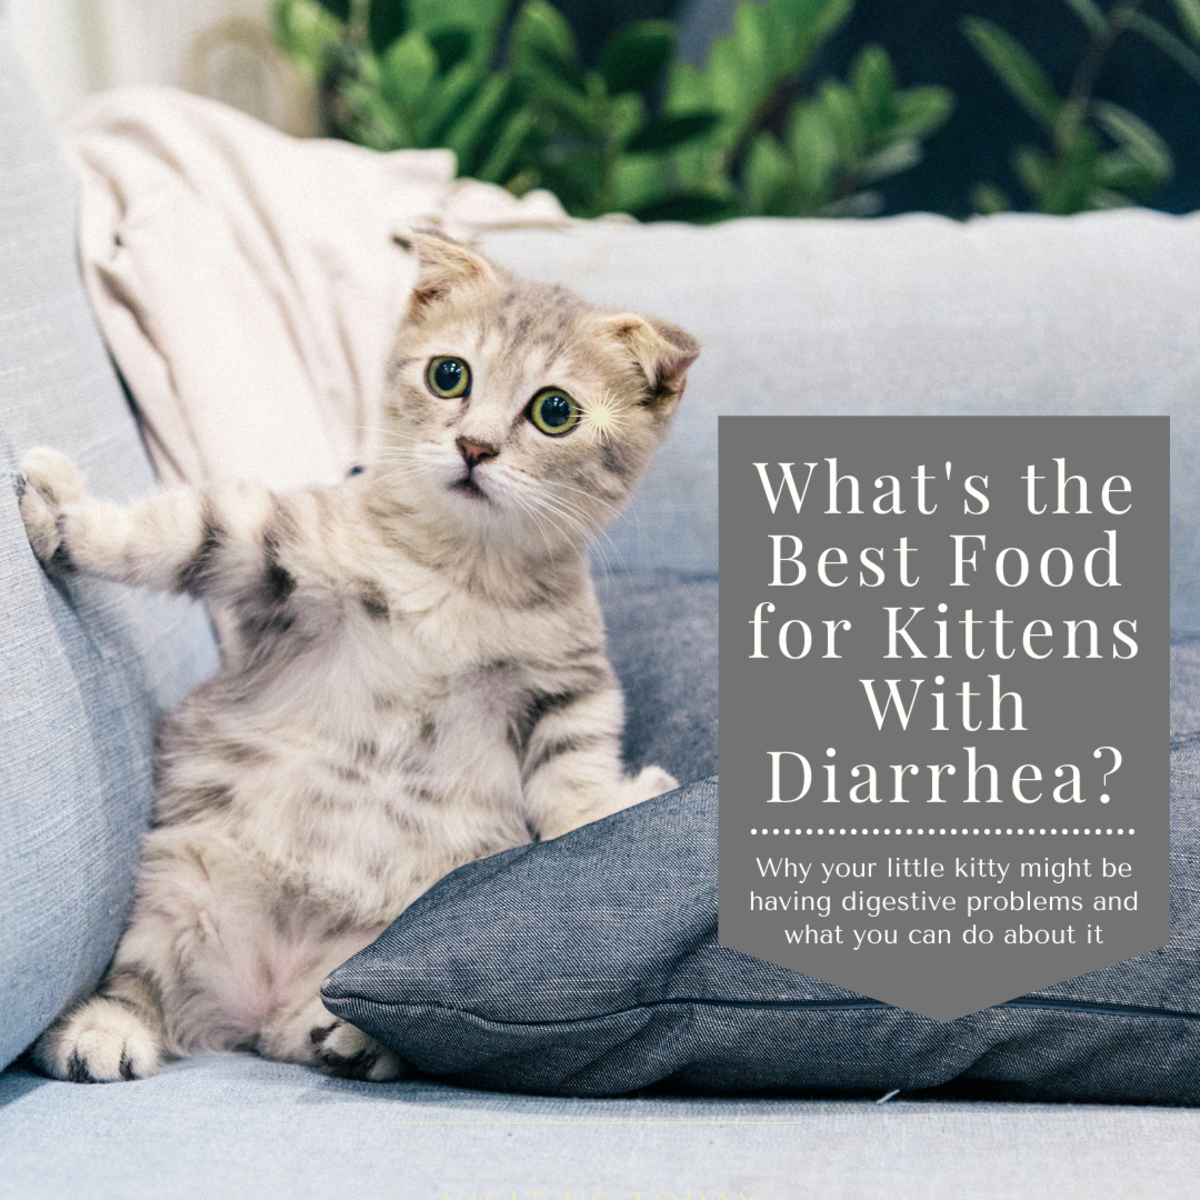 What Is the Best Kitten Food for Diarrhea?